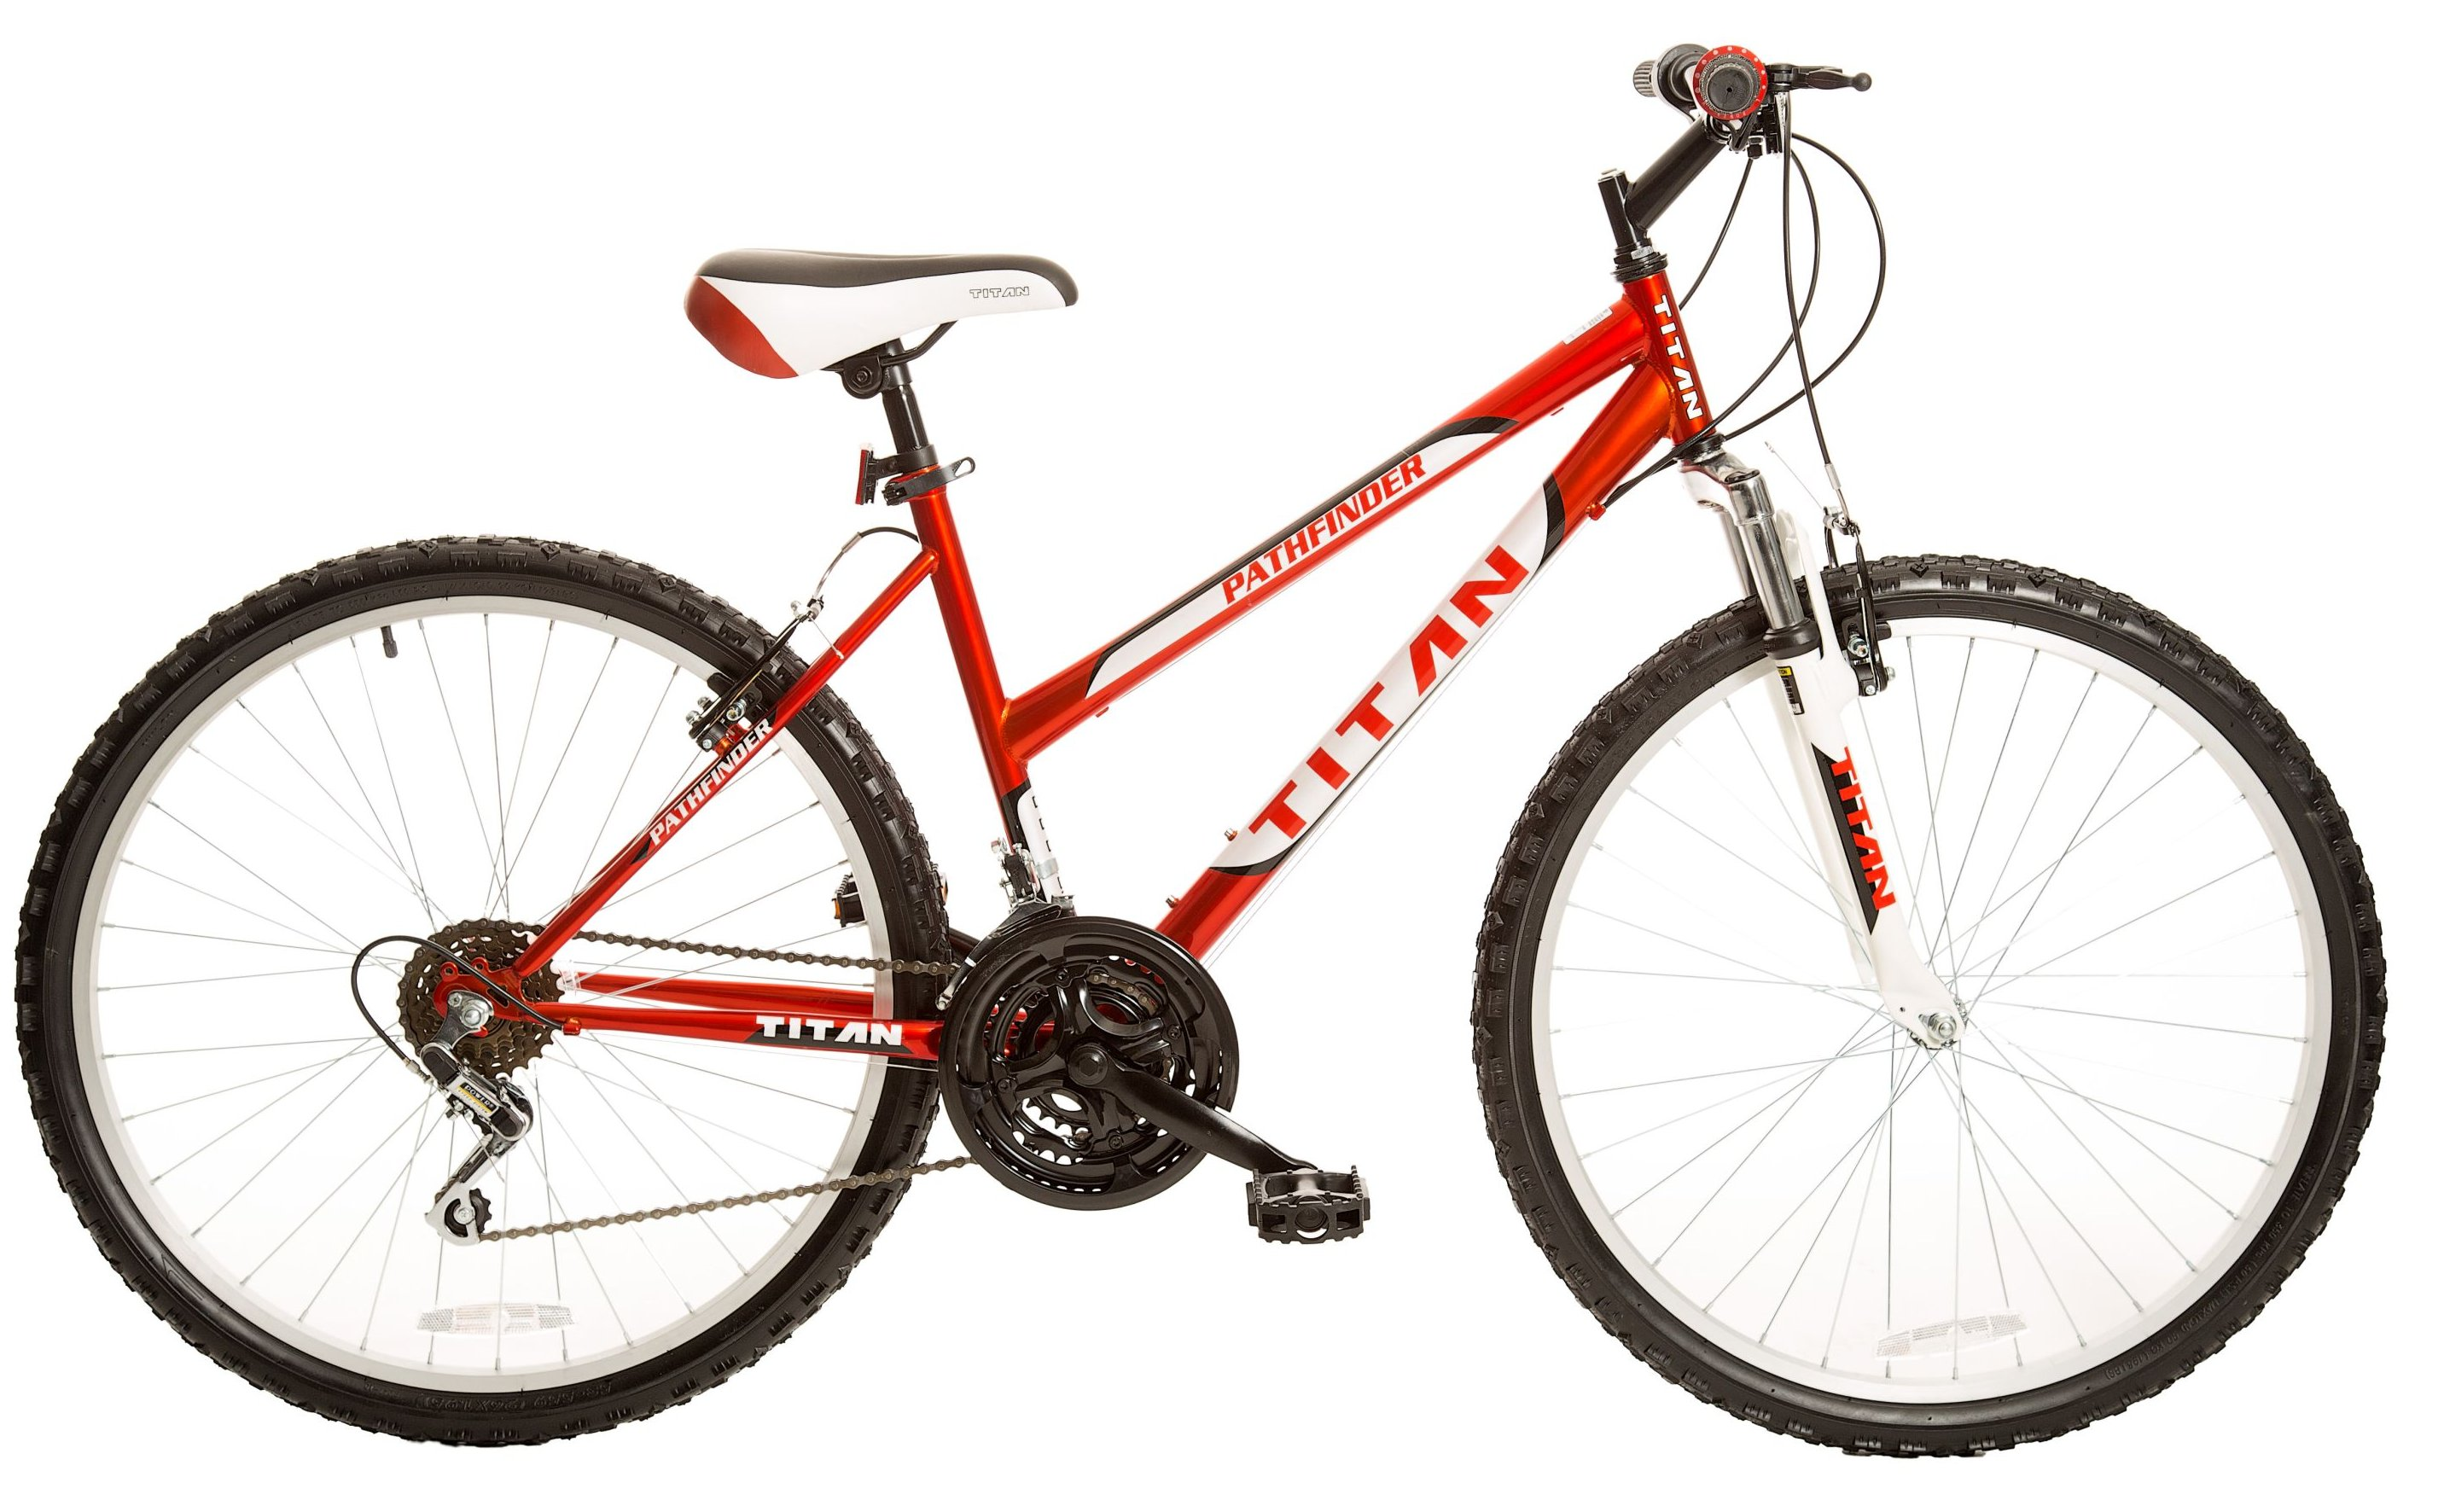 "Titan Pathfinder 105 26"" Ladies Steel ATB 18 Speed All Terrain Bicycle"